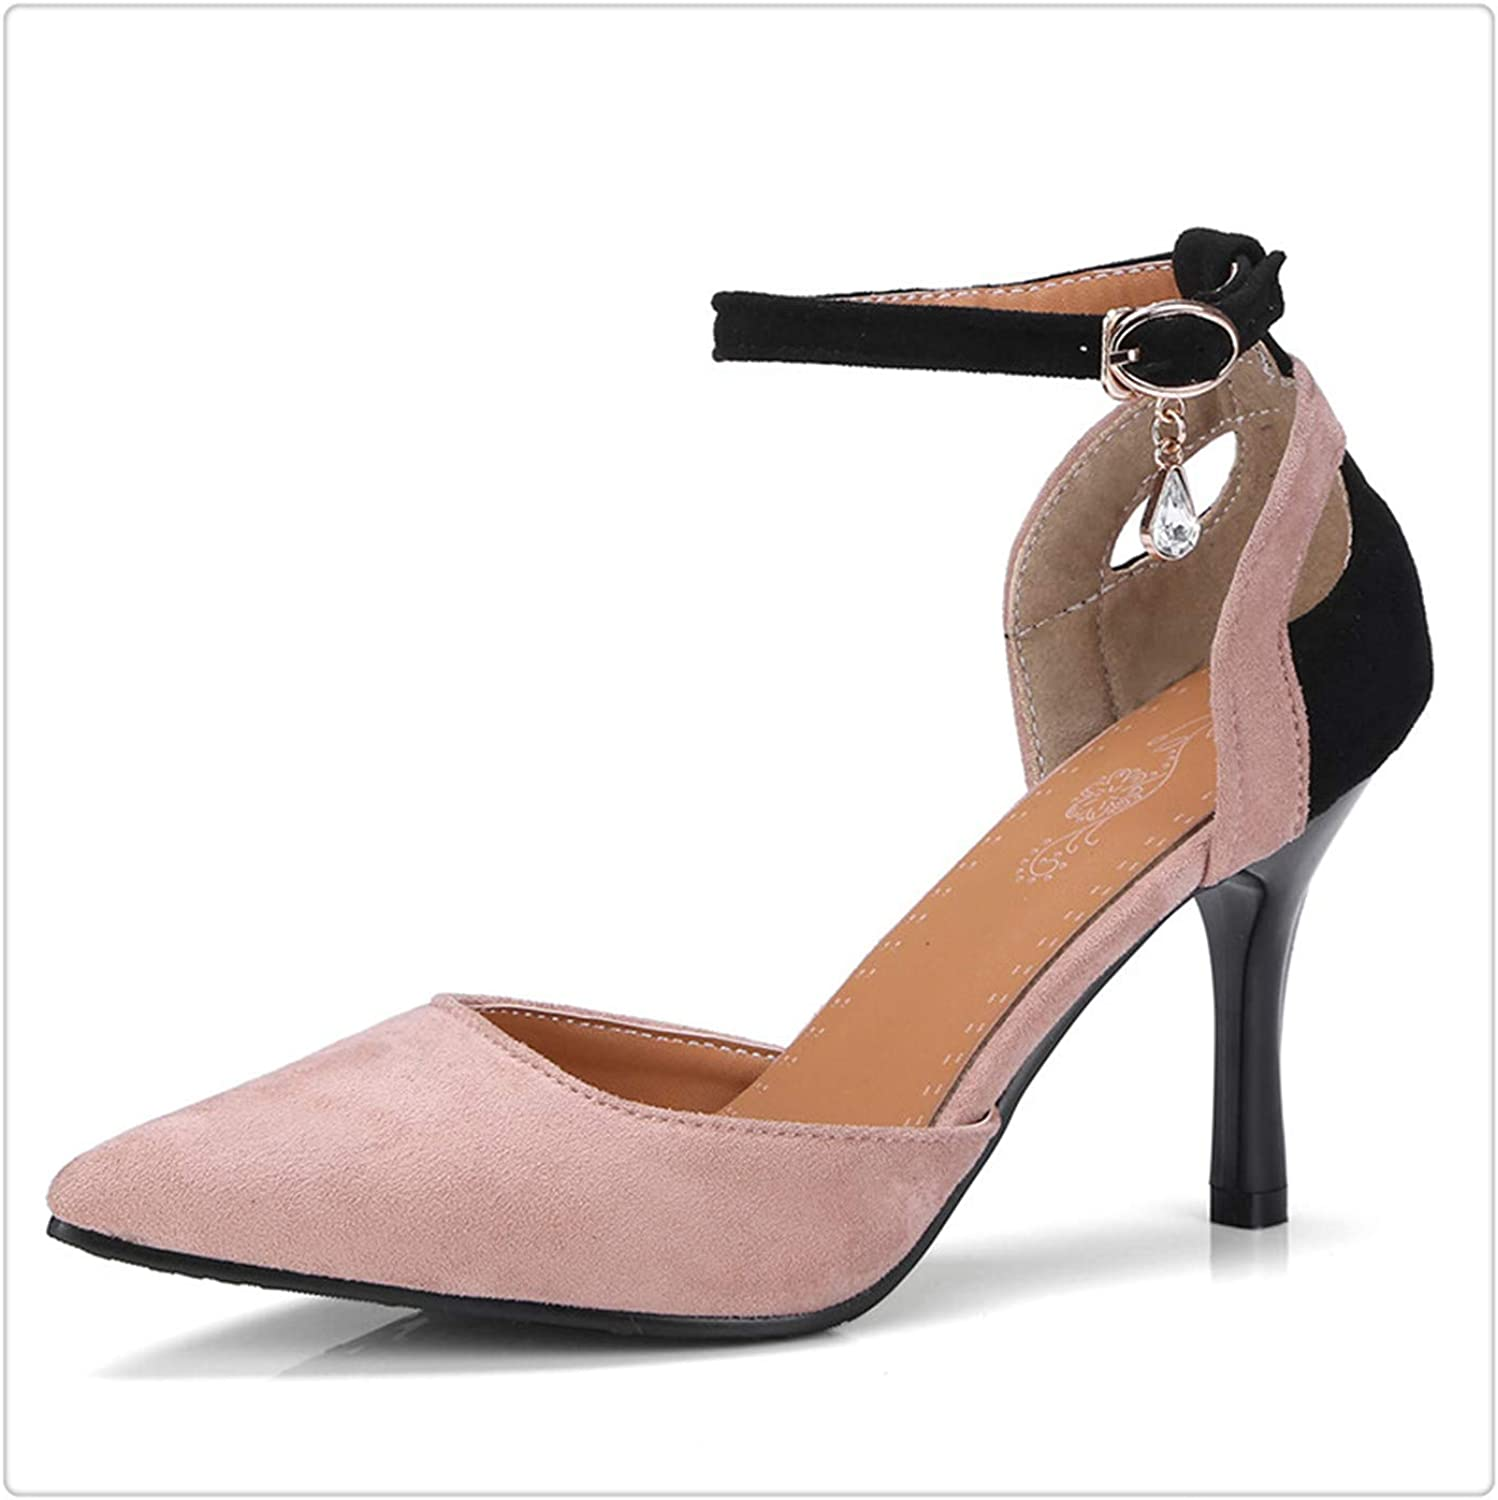 Yyixianma Woman Fashion thinHigh Heels Sandals Women Summer shoes 2019 Womens Female Ankle Strap Pointed Toe Suede Nubuck Sandal Pink 4